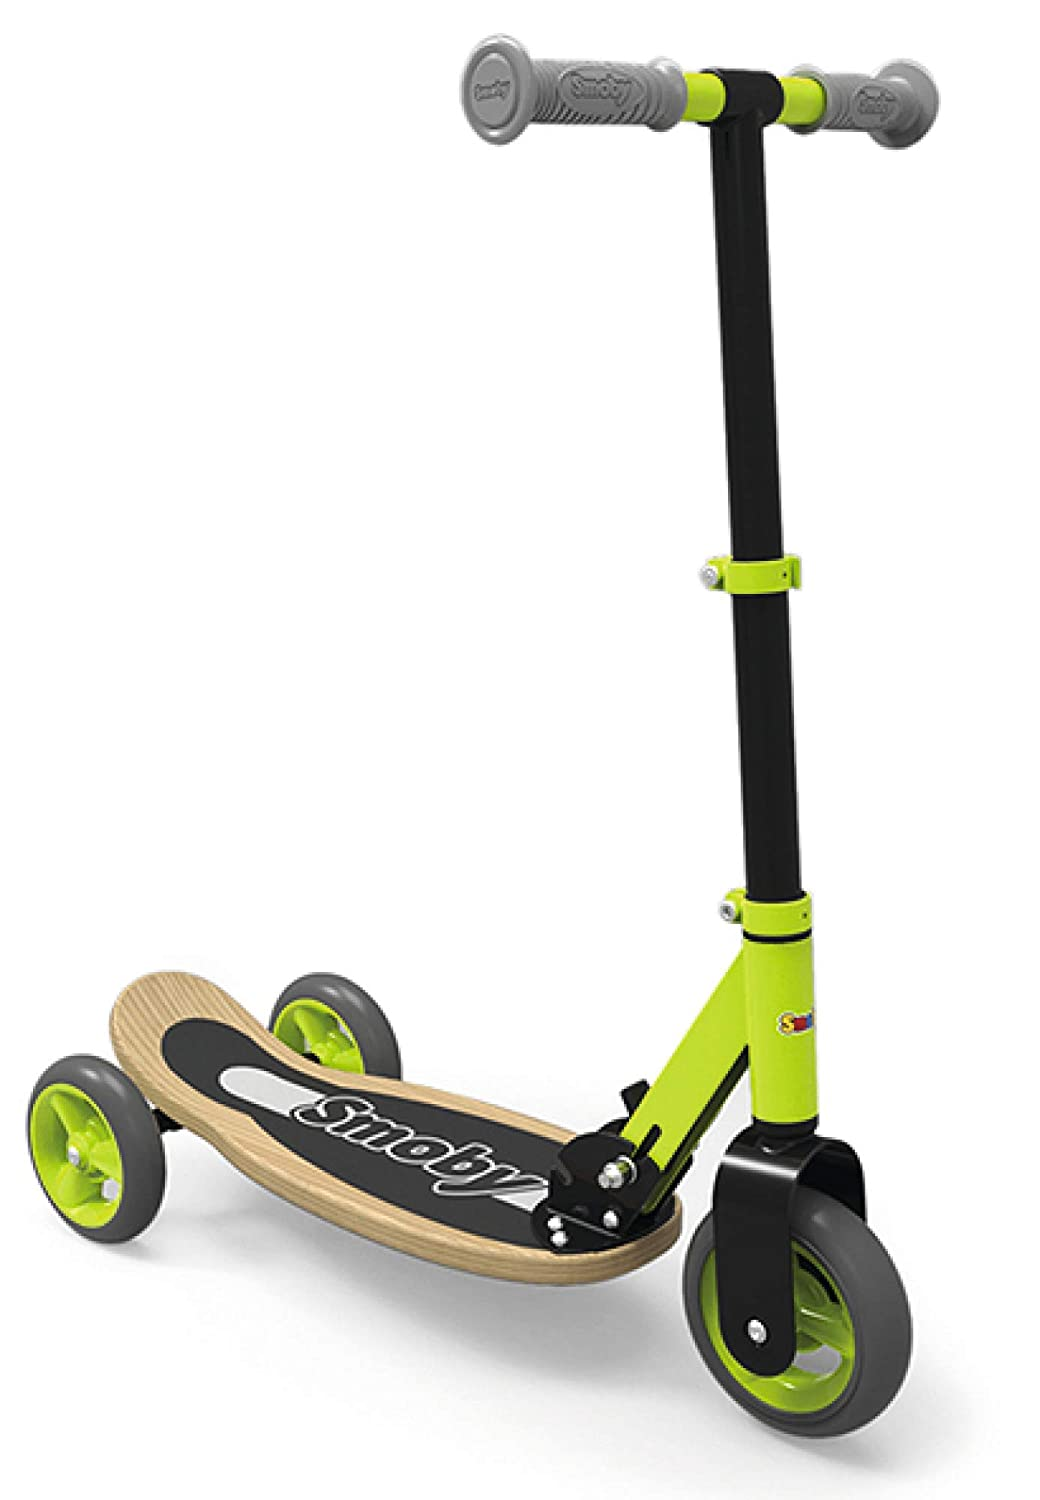 Smoby 750174 Wooden - Patinete (3 Ruedas), Color Verde ...